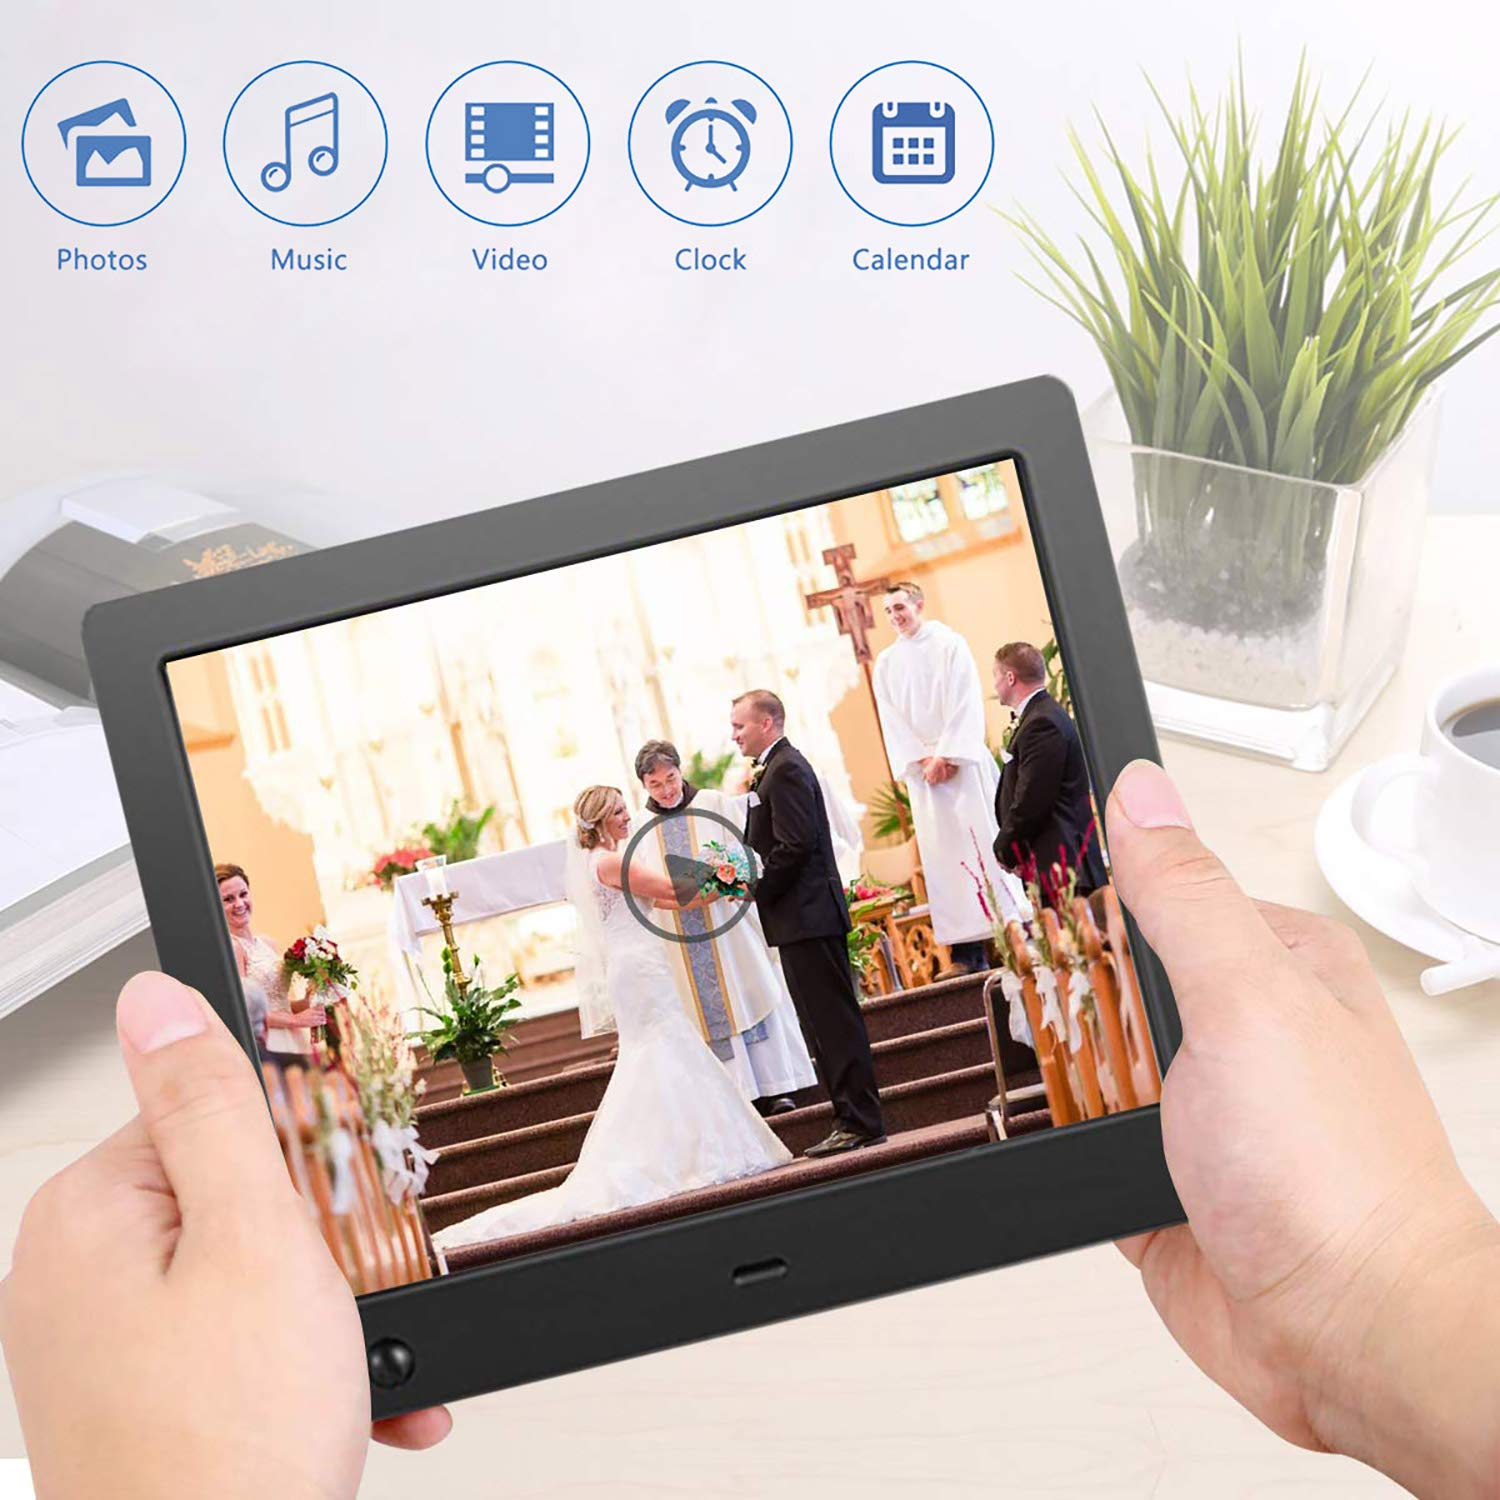 Digital Picture Frame 8 inch, Digital Photo Frame Video Player with Motion Sensor Smart Electronics Picture Frame High Resolution 1024x768 IPS LCD/1080P 720P /Stereo/MP3/Calendar/Time/Remote Control by Quality Life (Image #6)